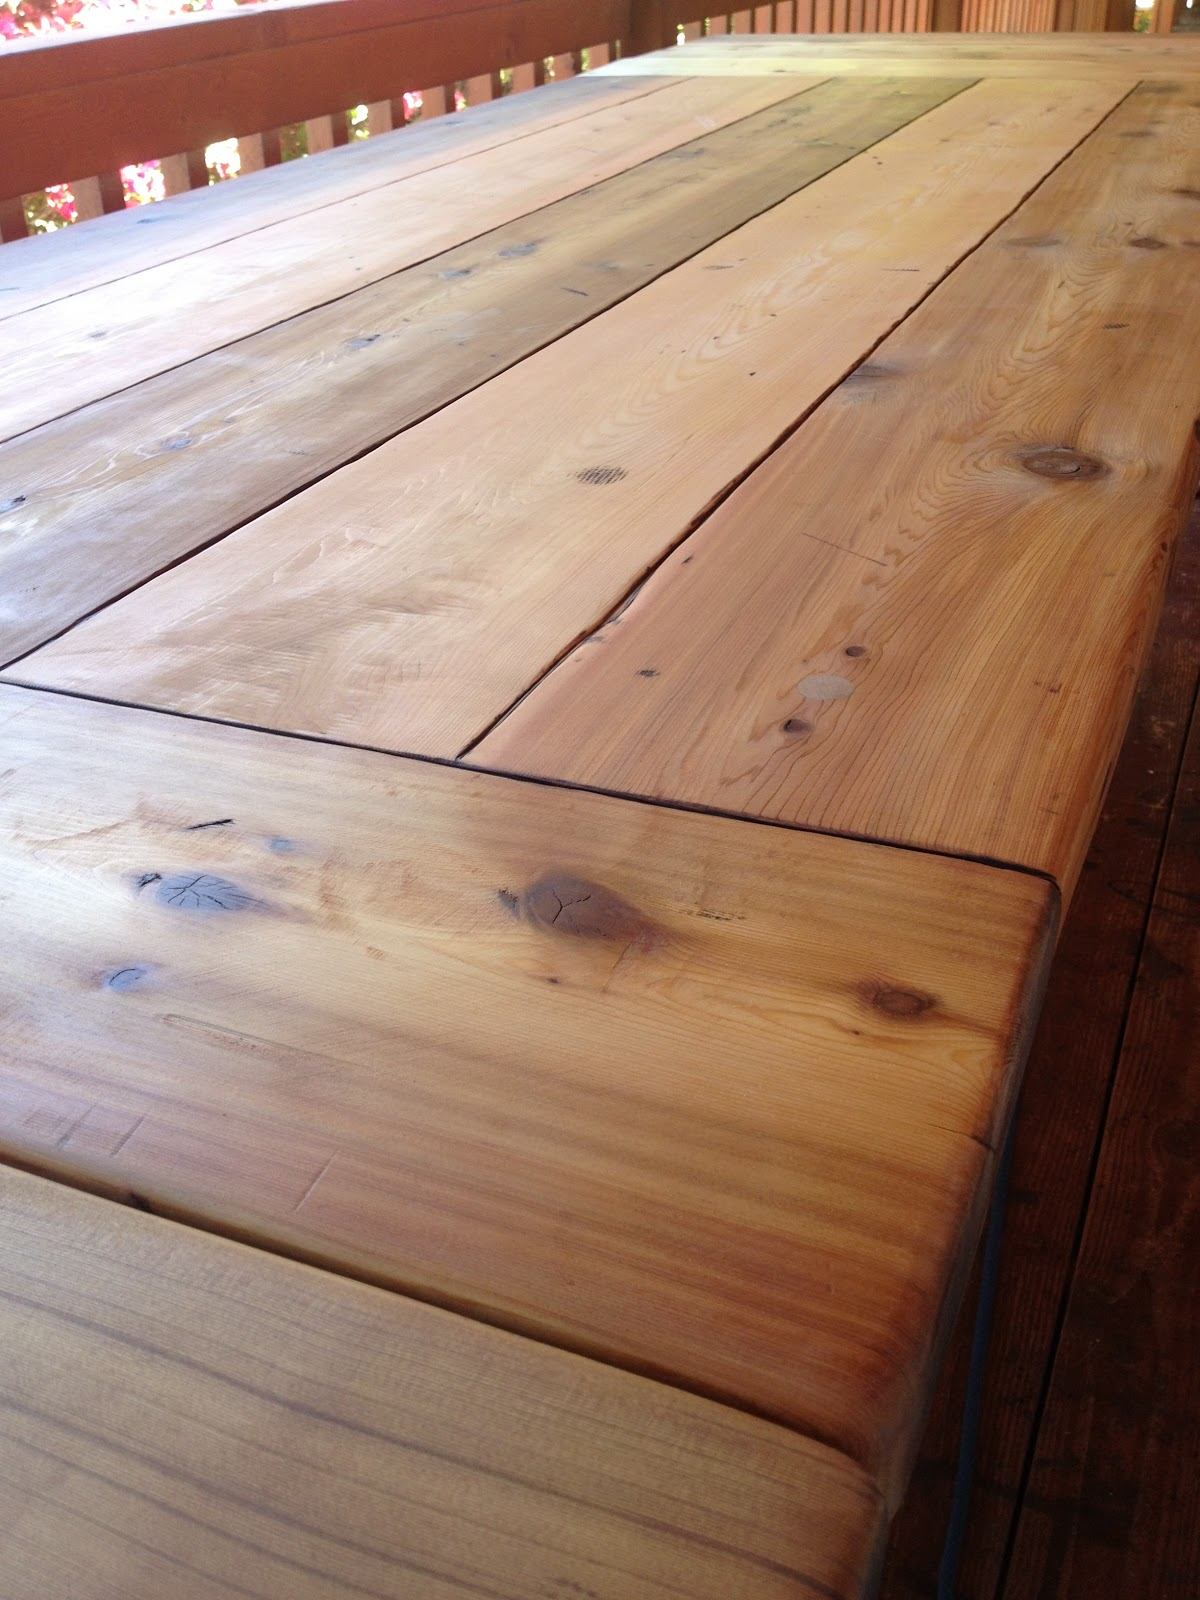 The polish carpenter 10 foot long cedar table with for 10 foot long table